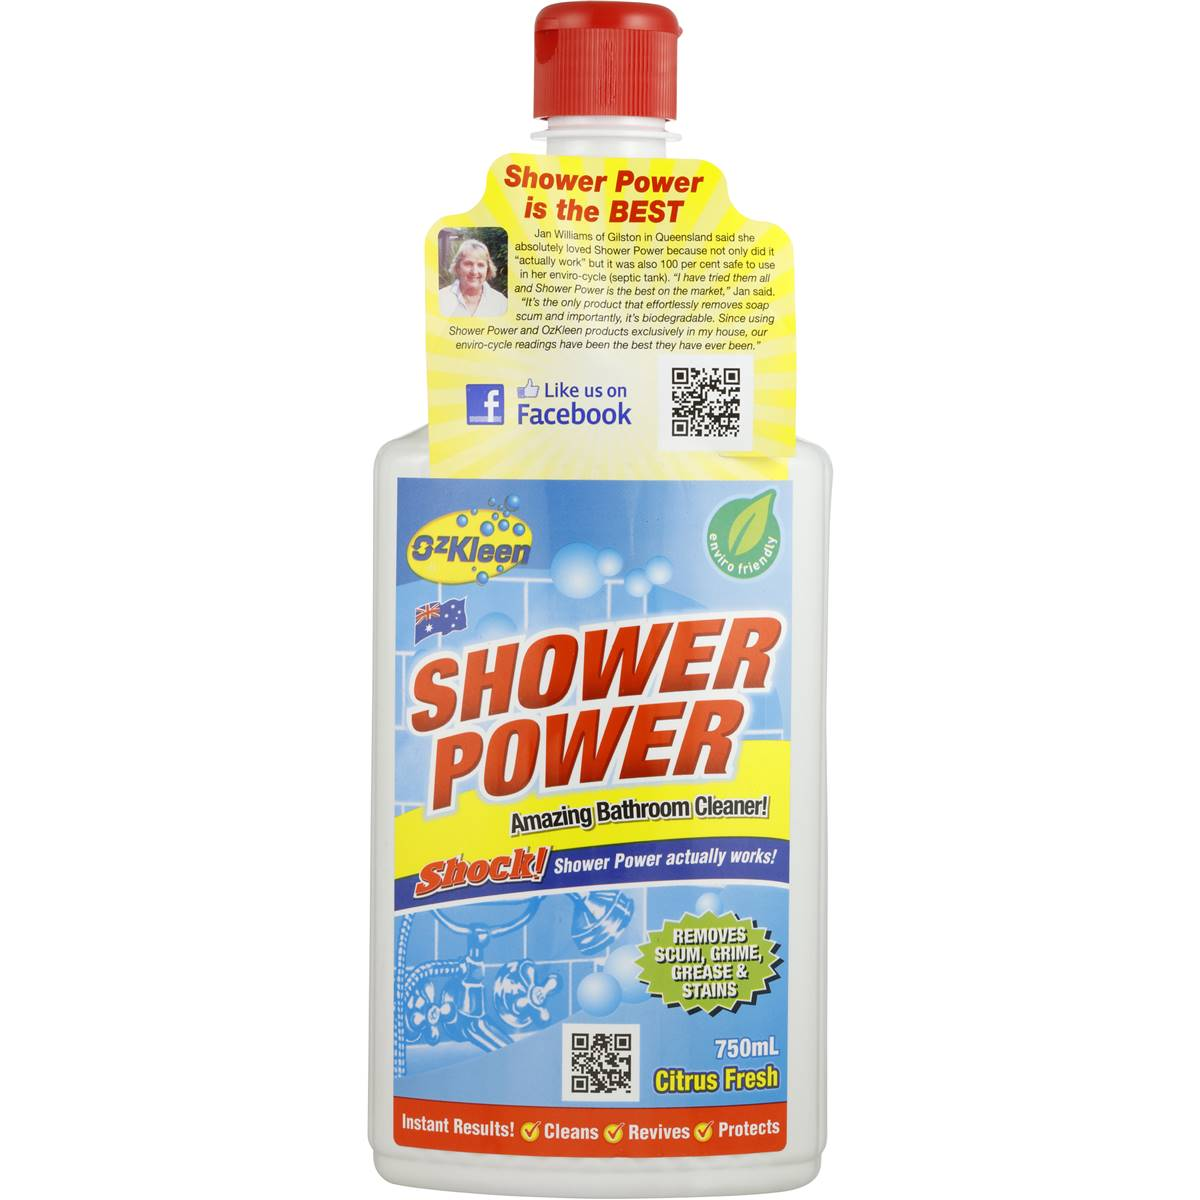 Shower Power Bathroom Cleaner My Web Value